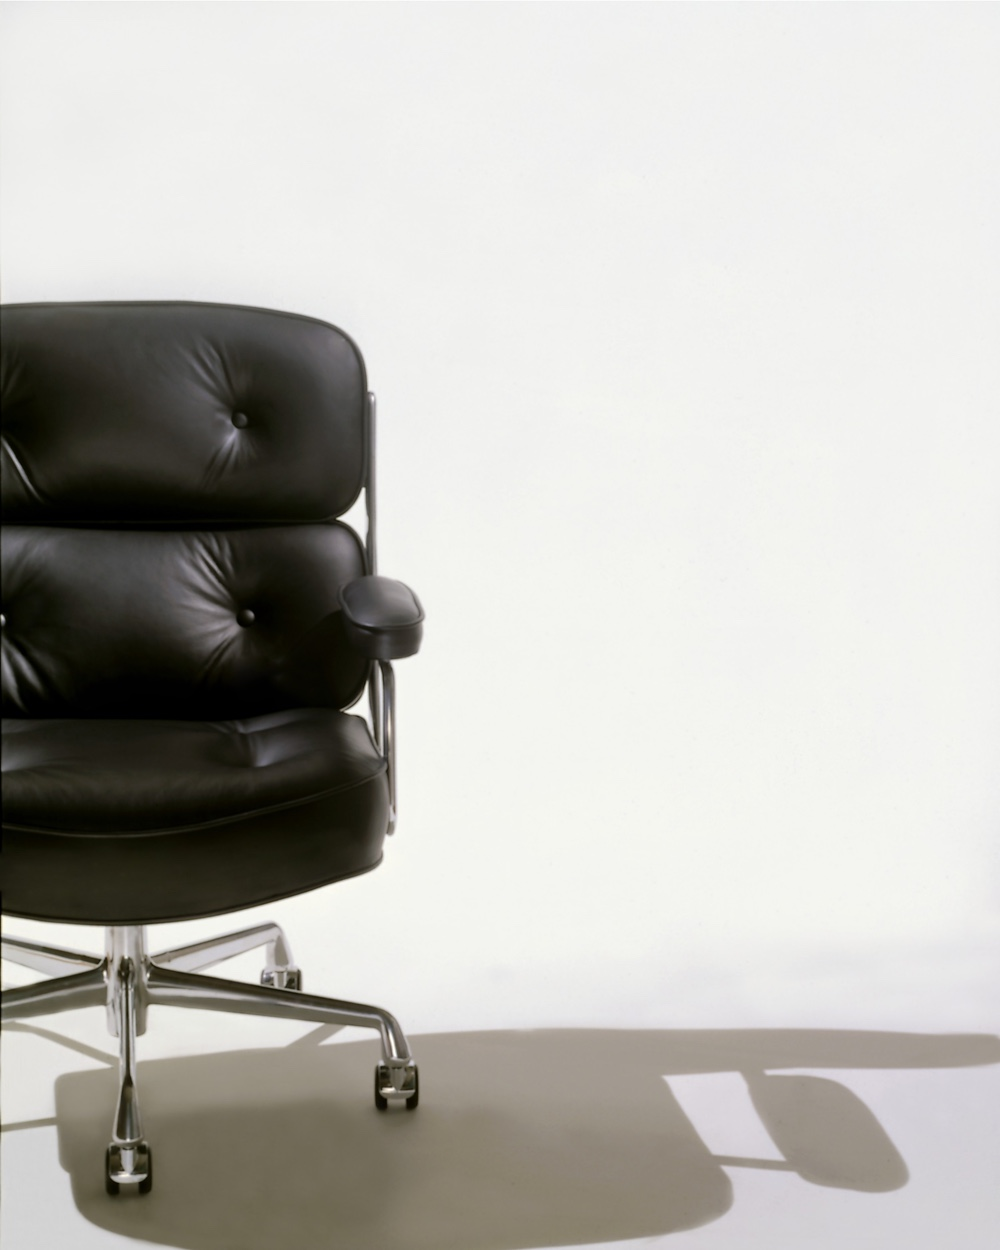 The Eames Executive Chair. Image © 2016 Herman Miller, Inc.